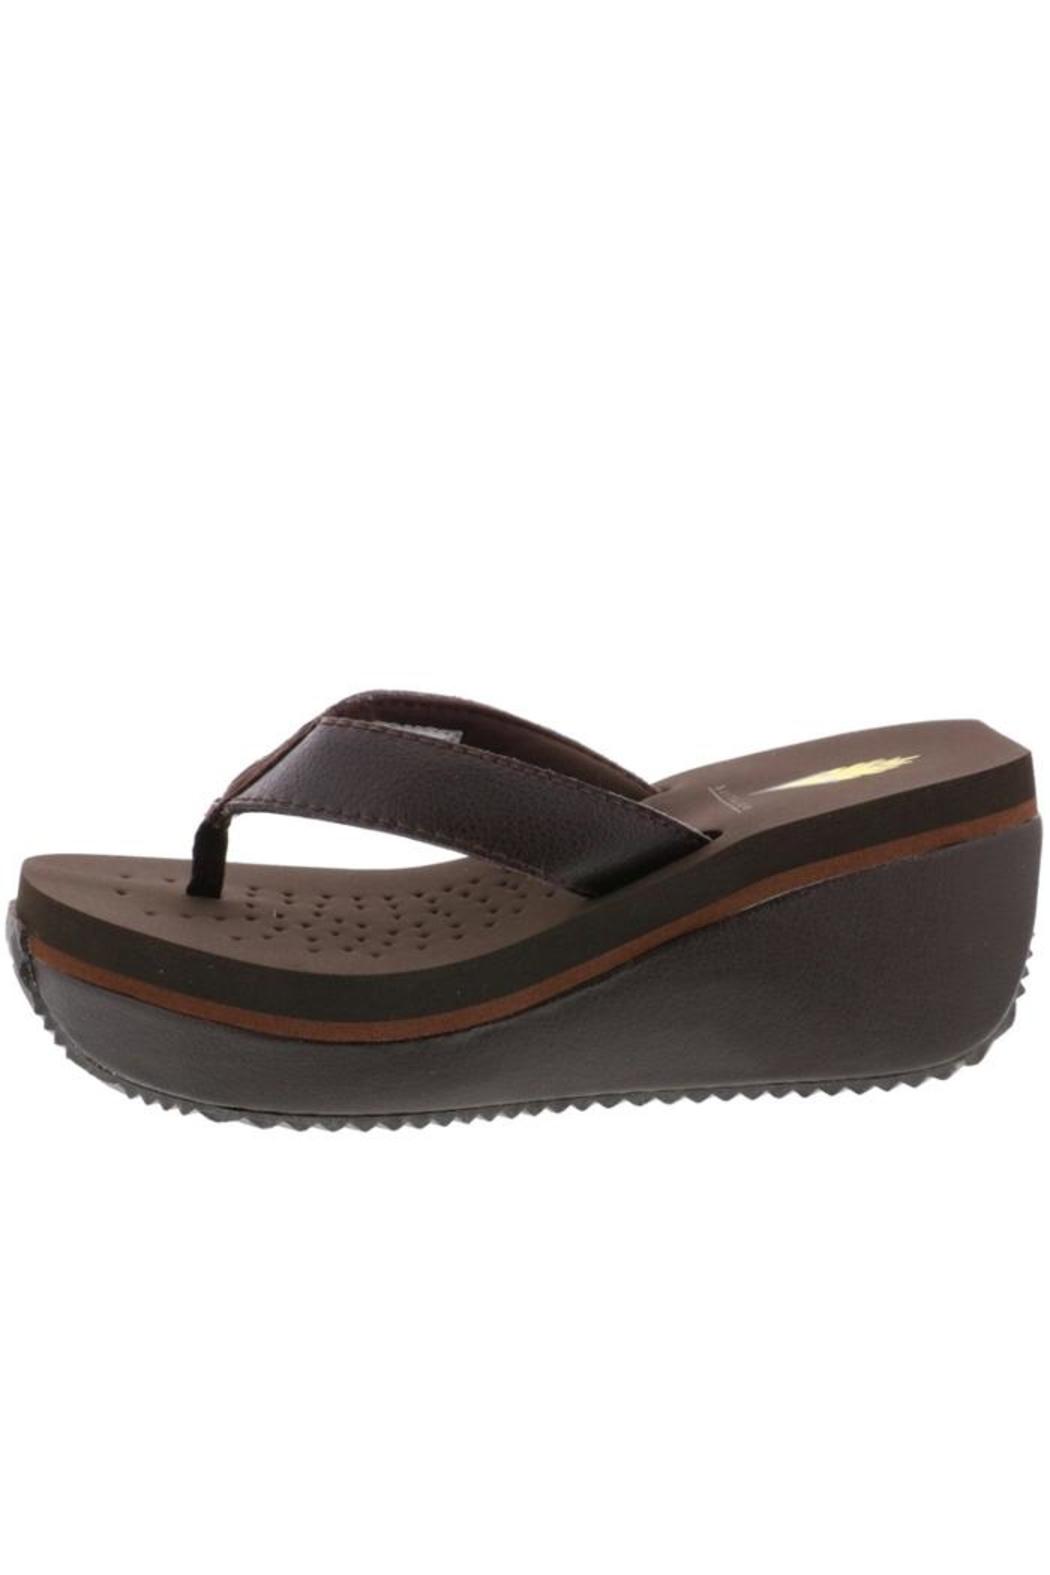 Volatile Leather Platform Flip-Flops - Main Image